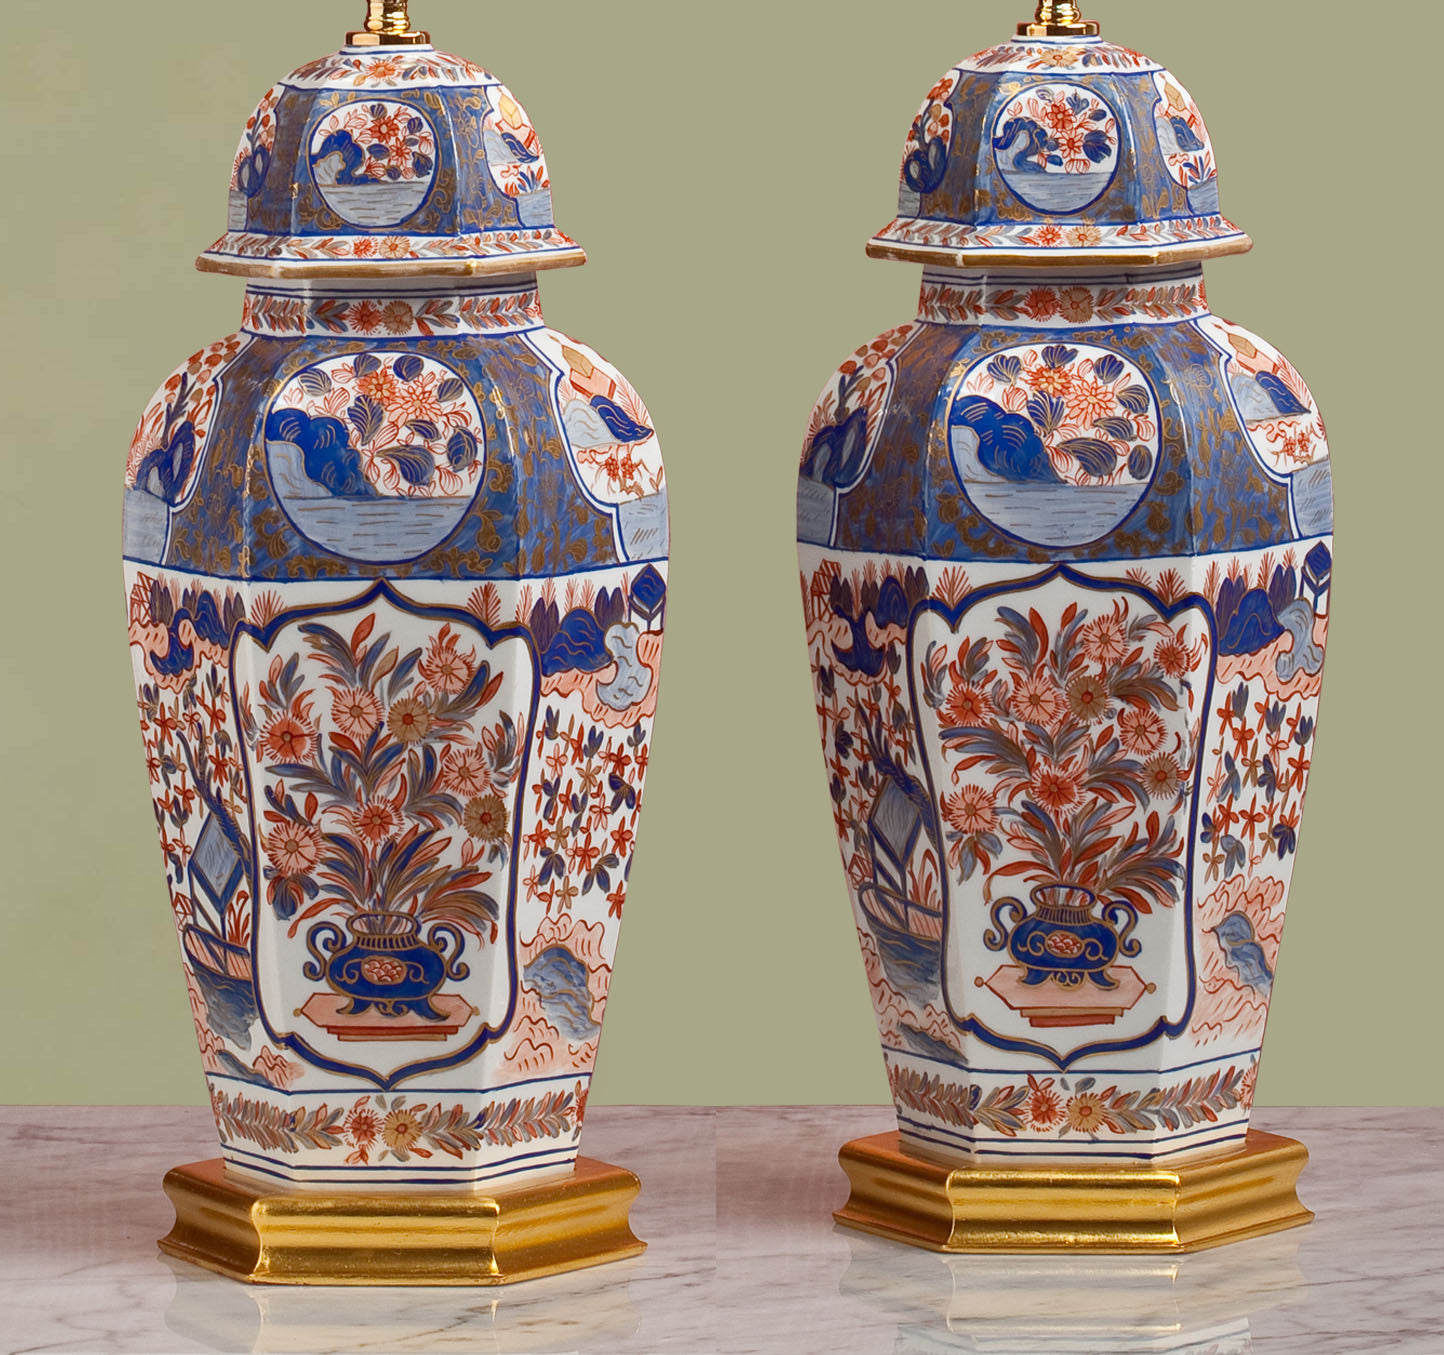 E093  A Superb Large Pair of French Limoges Hexagonal Shaped Lamps - Circa 1950's